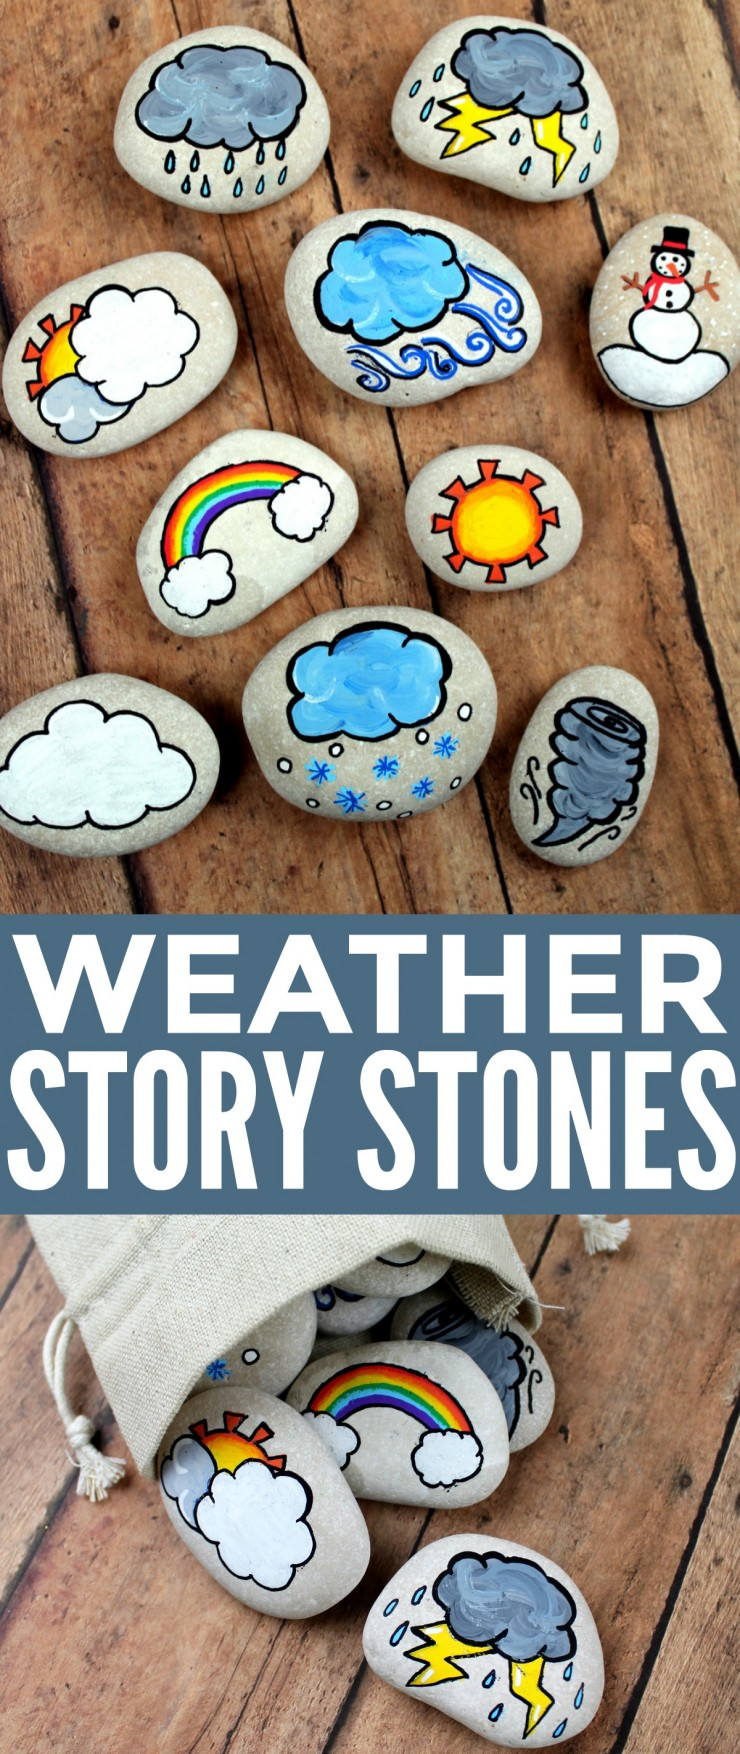 These weather story stones are a DIY toy designed for story-telling prompts and for narrative play. Story stones are fun and so easy to make plus your kids can enjoy them for years! They could also be helpful when teaching younger kids about our changing weather.